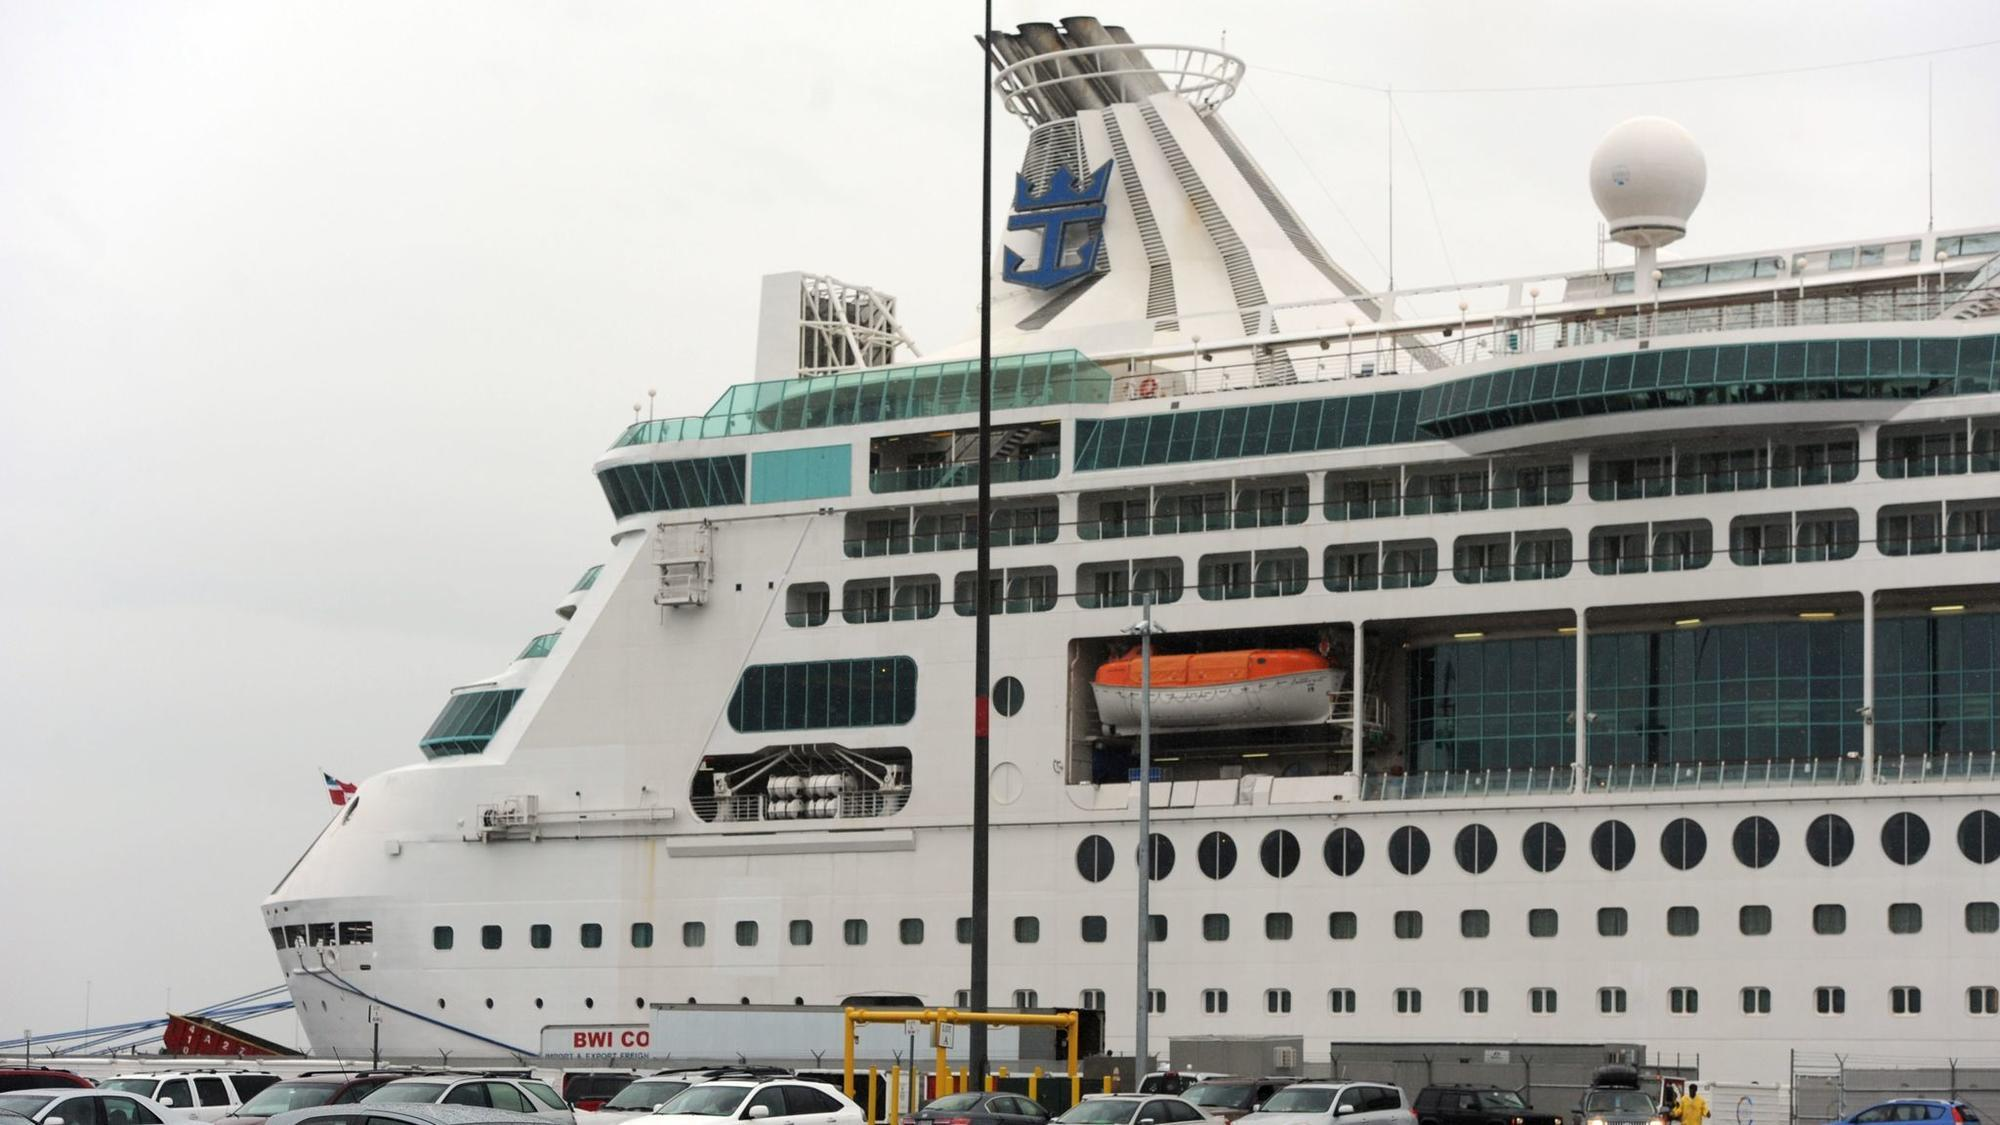 Fall Sick On Royal Caribbean Cruise Ship That Departed From - Cruise ships that leave from baltimore md